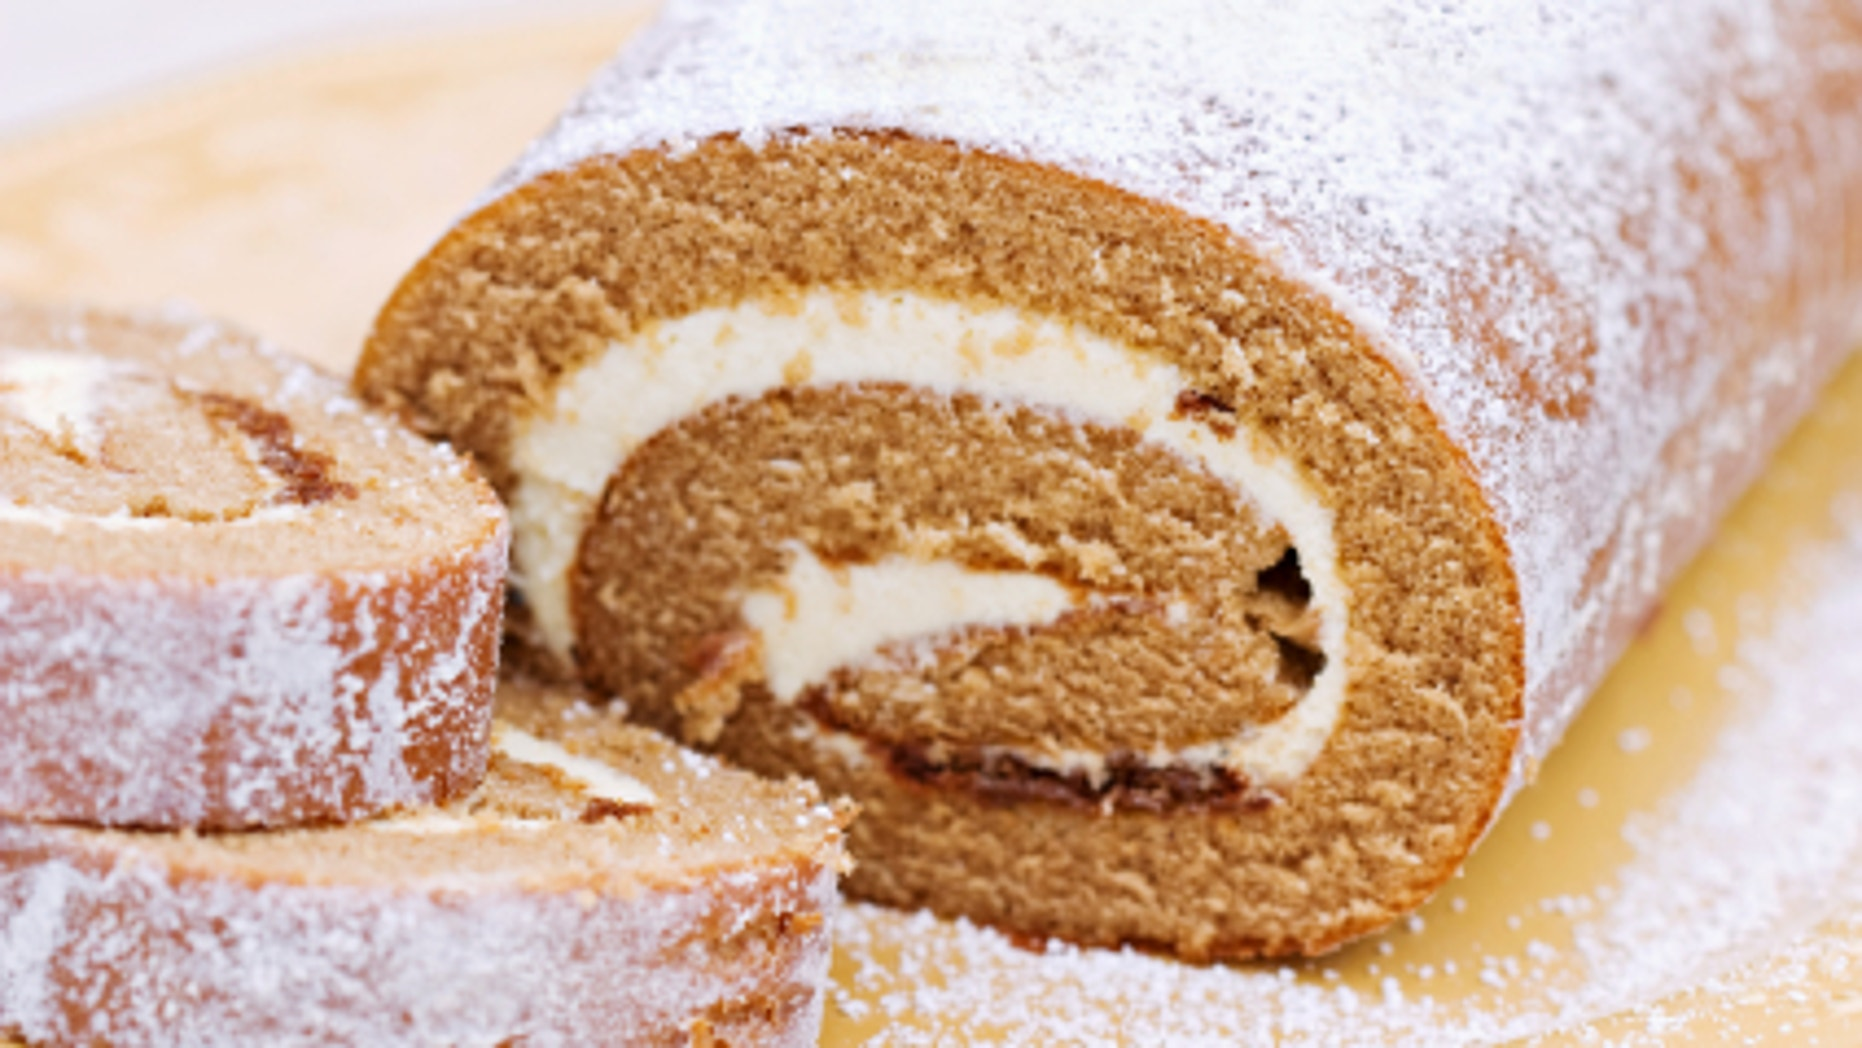 Delicious Pumpkin Roll sprinkled with powdered sugar.